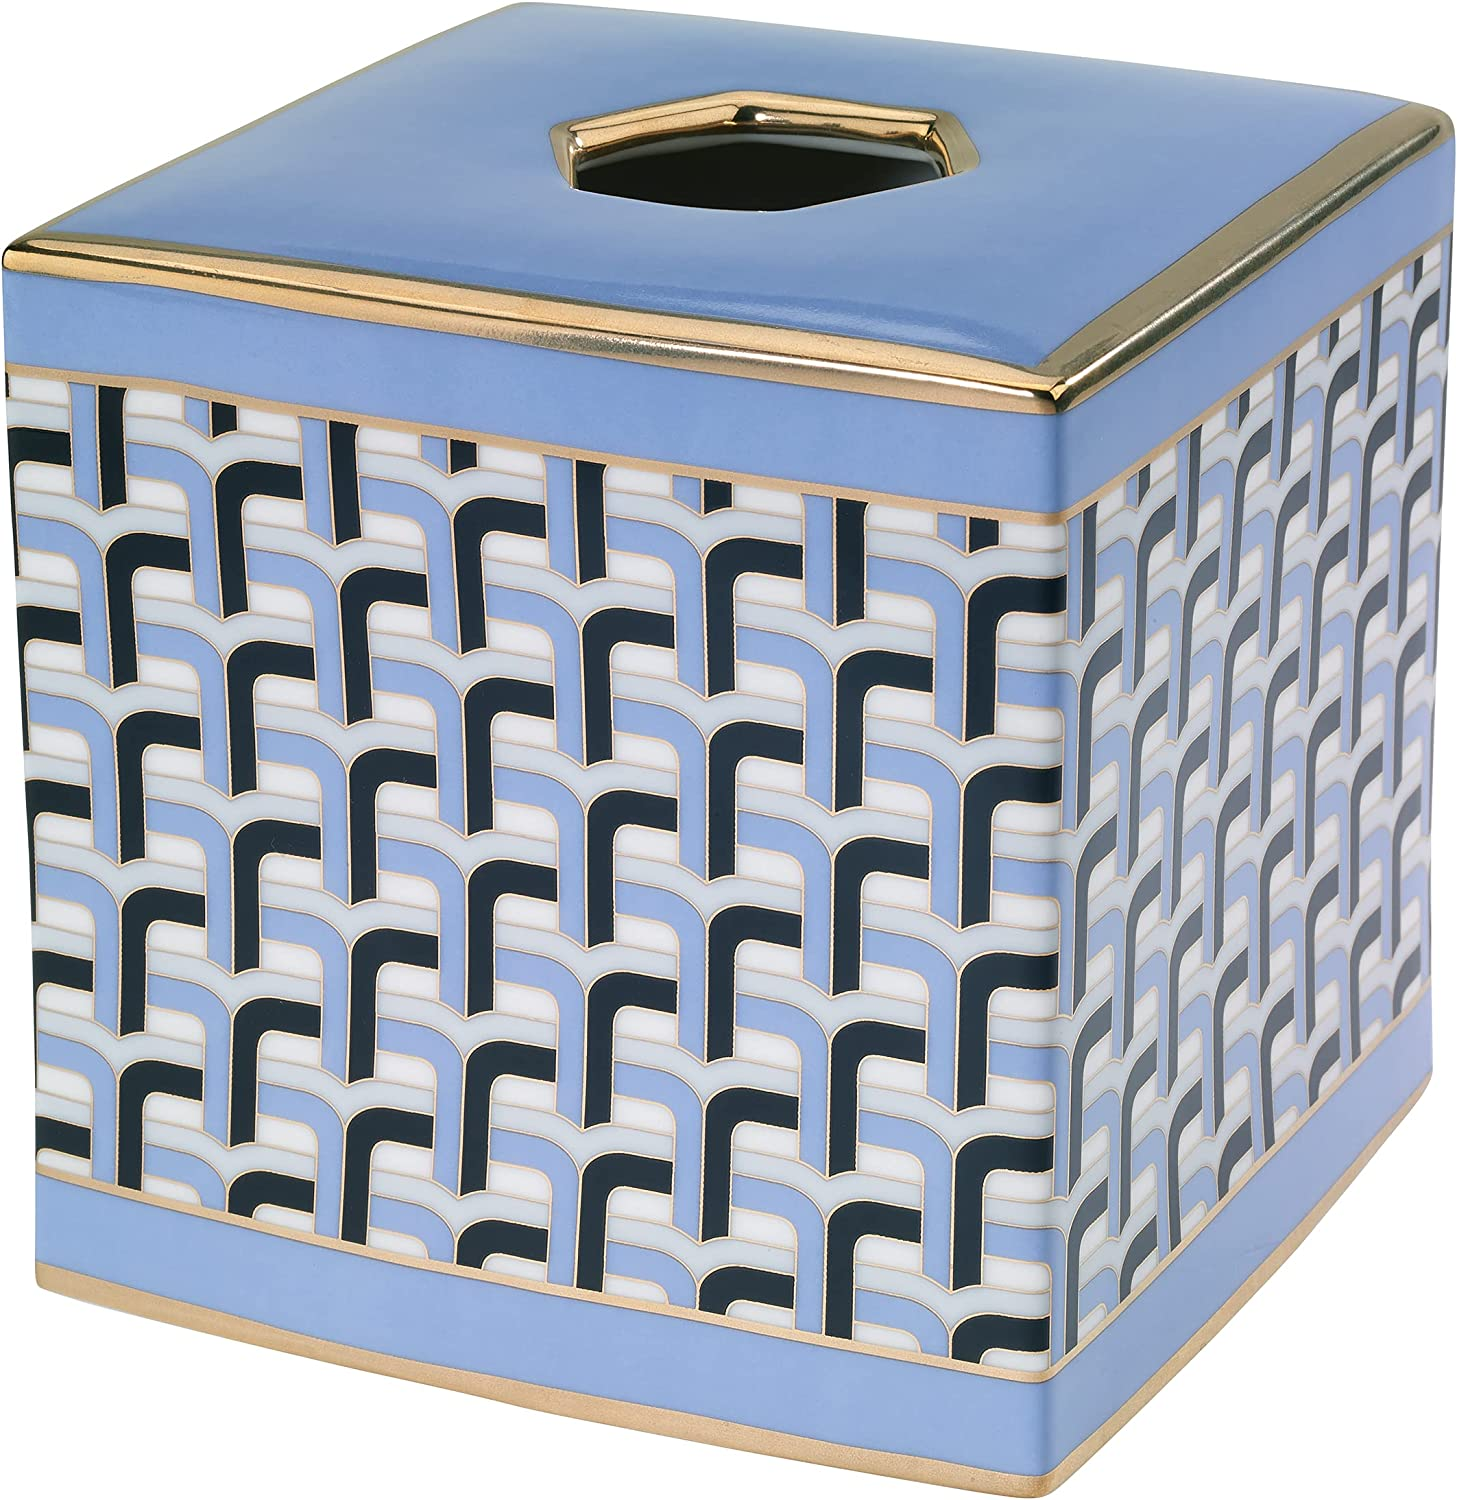 Avanti Linens Credence Jonathan Adler Collection-Versailles Beauty products Tissue Cover